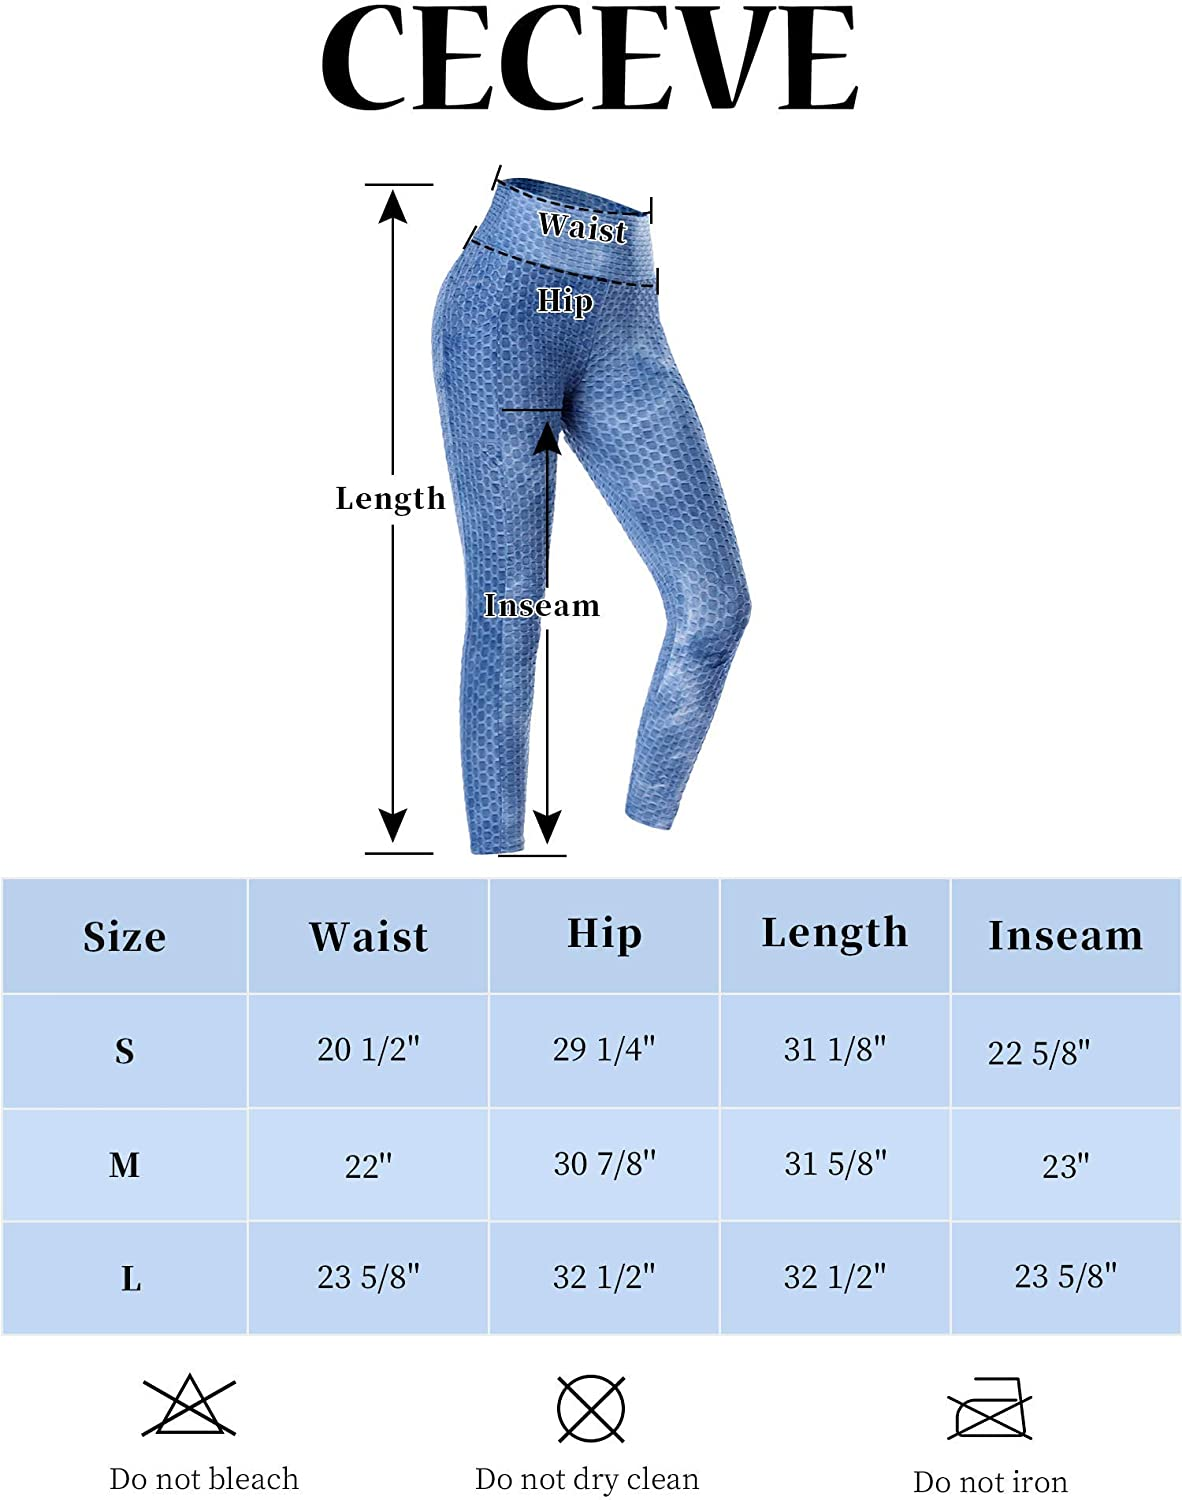 CECEVE Butt Lift Leggings for Women TIK Tok Workout High Waisted Yoga Pants Tummy Control Tights with Pockets